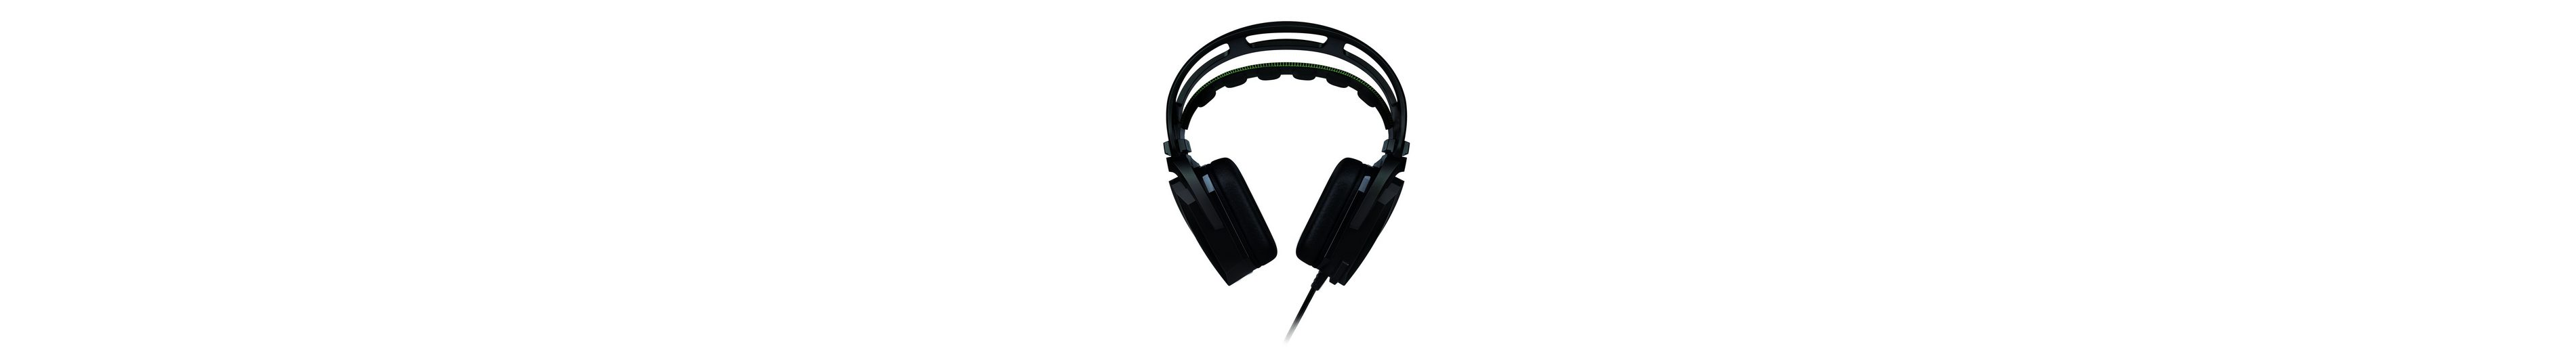 RAZER Gaming Headset »Tiamat 2.2«